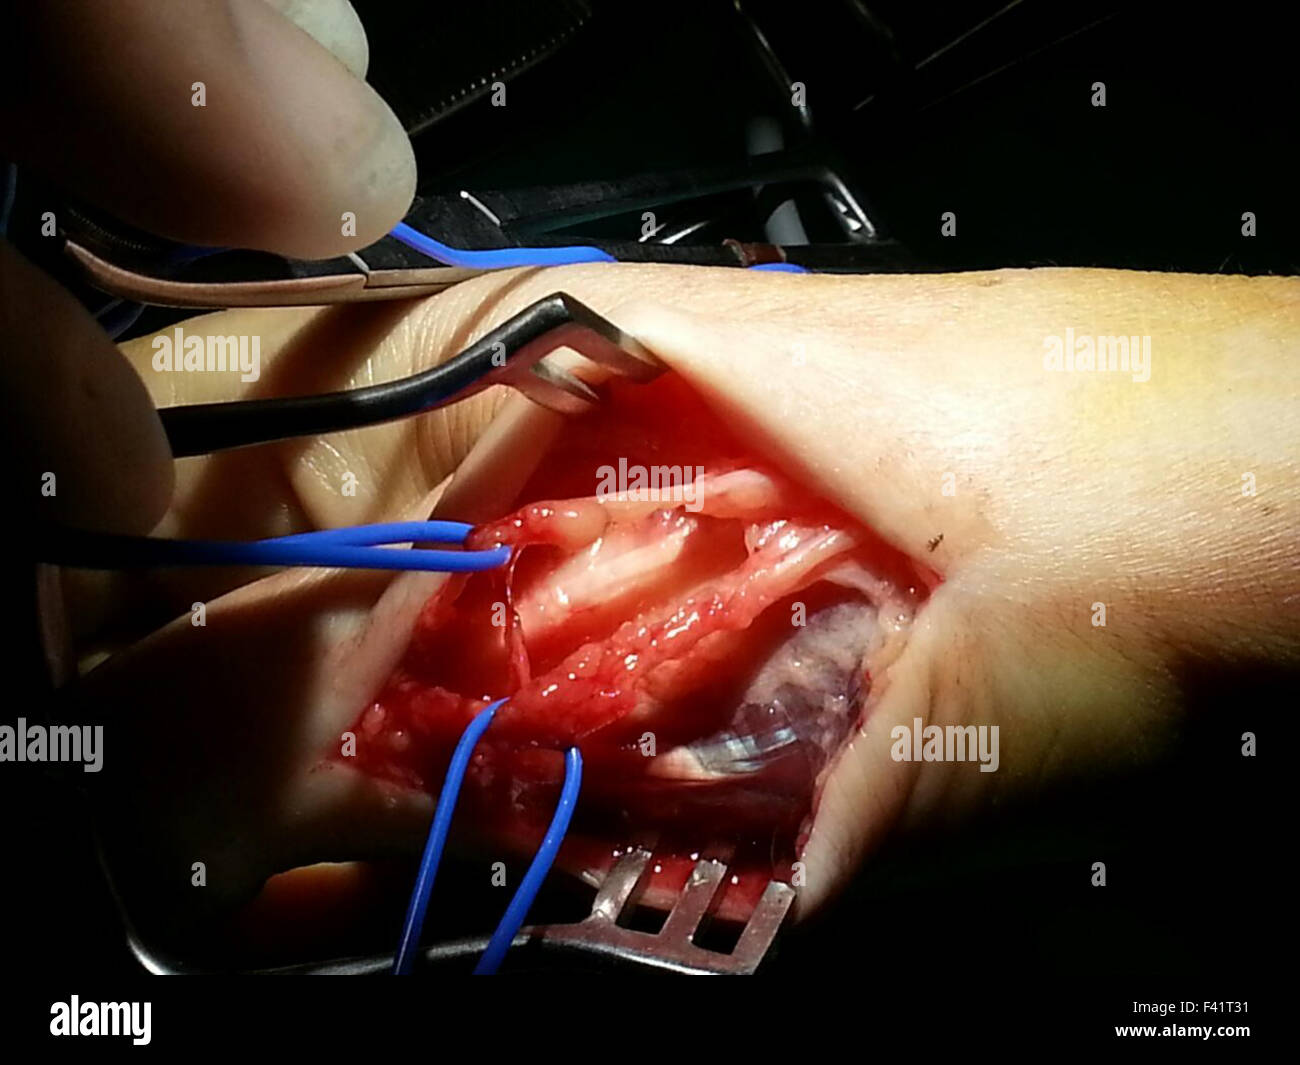 cyst of sensitive branch of radial nerve - Stock Image